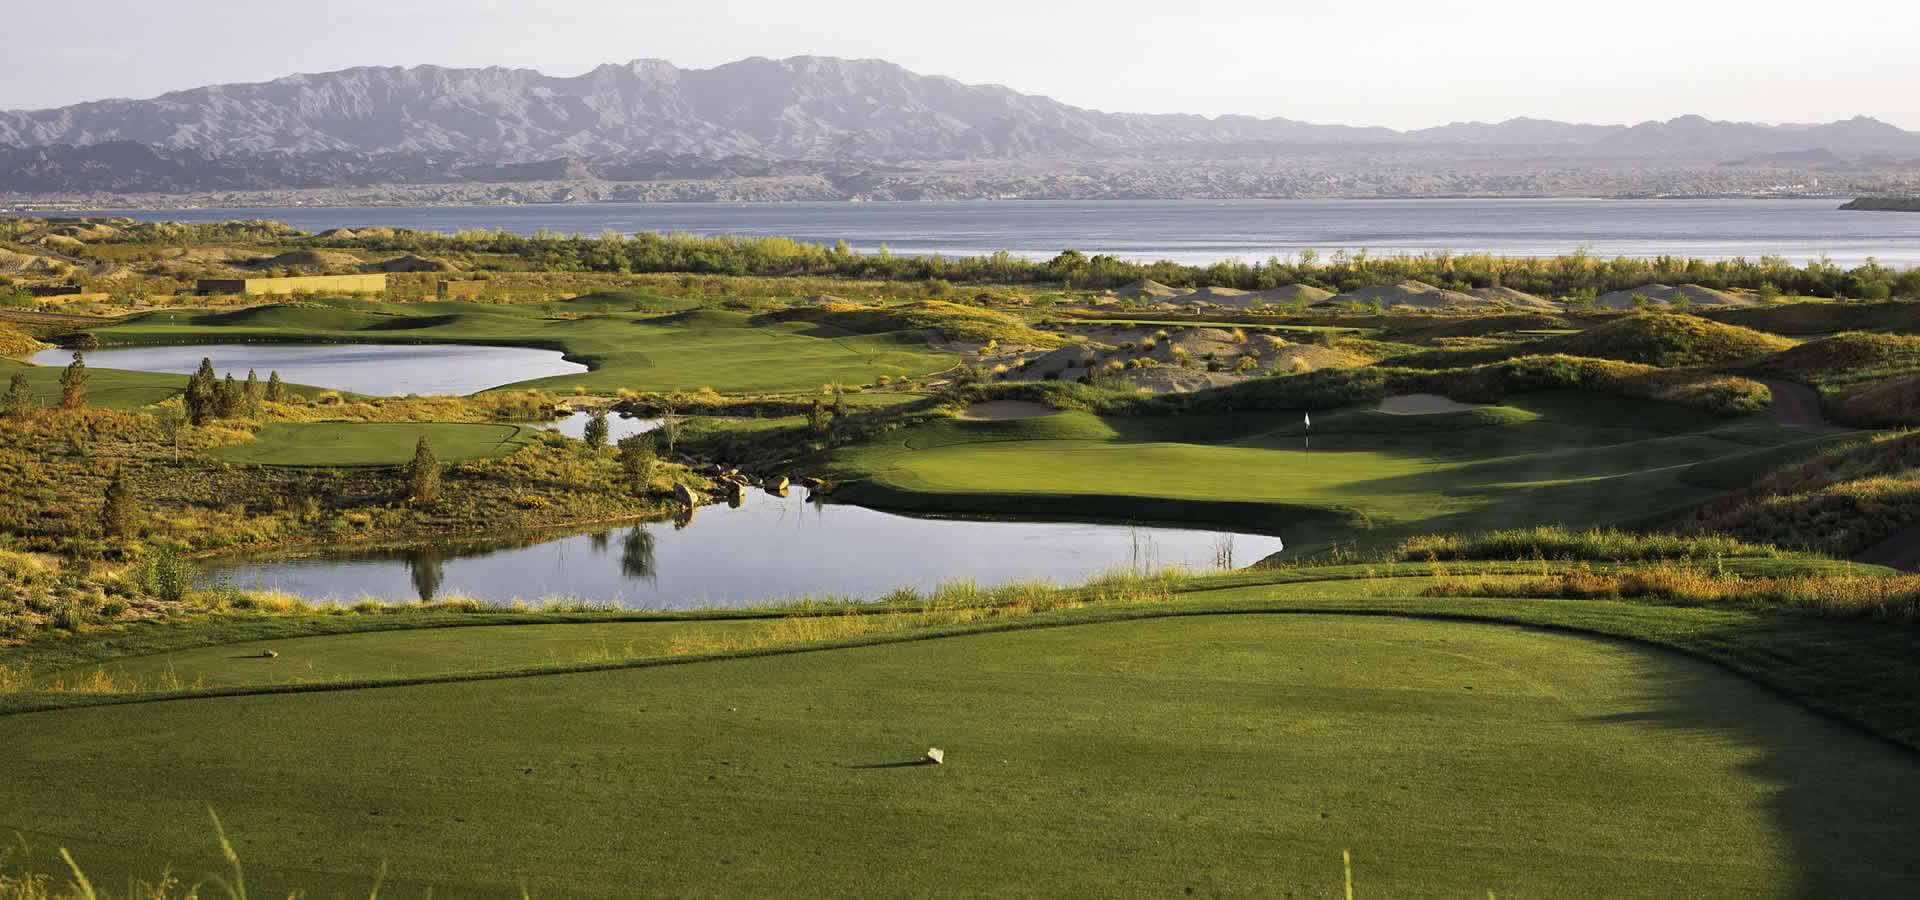 Refuge golf and country club, Lake Havasu City